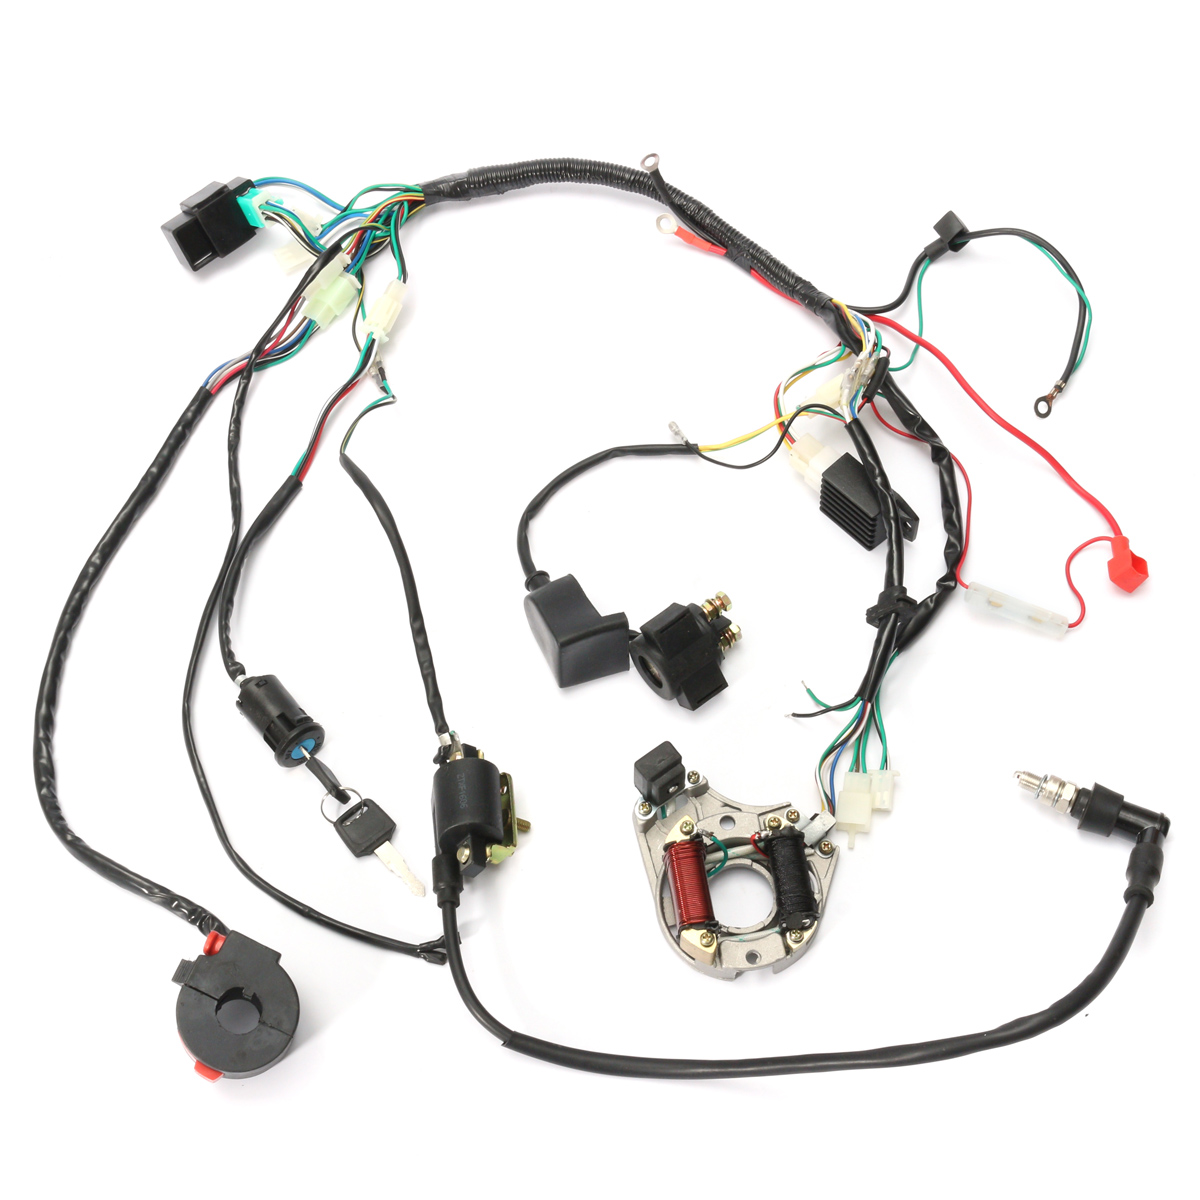 WIRE HARNESS WIRING CDI ASSEMBLY For 50 70 90 110 125CC ATV QUAD COOLSTER